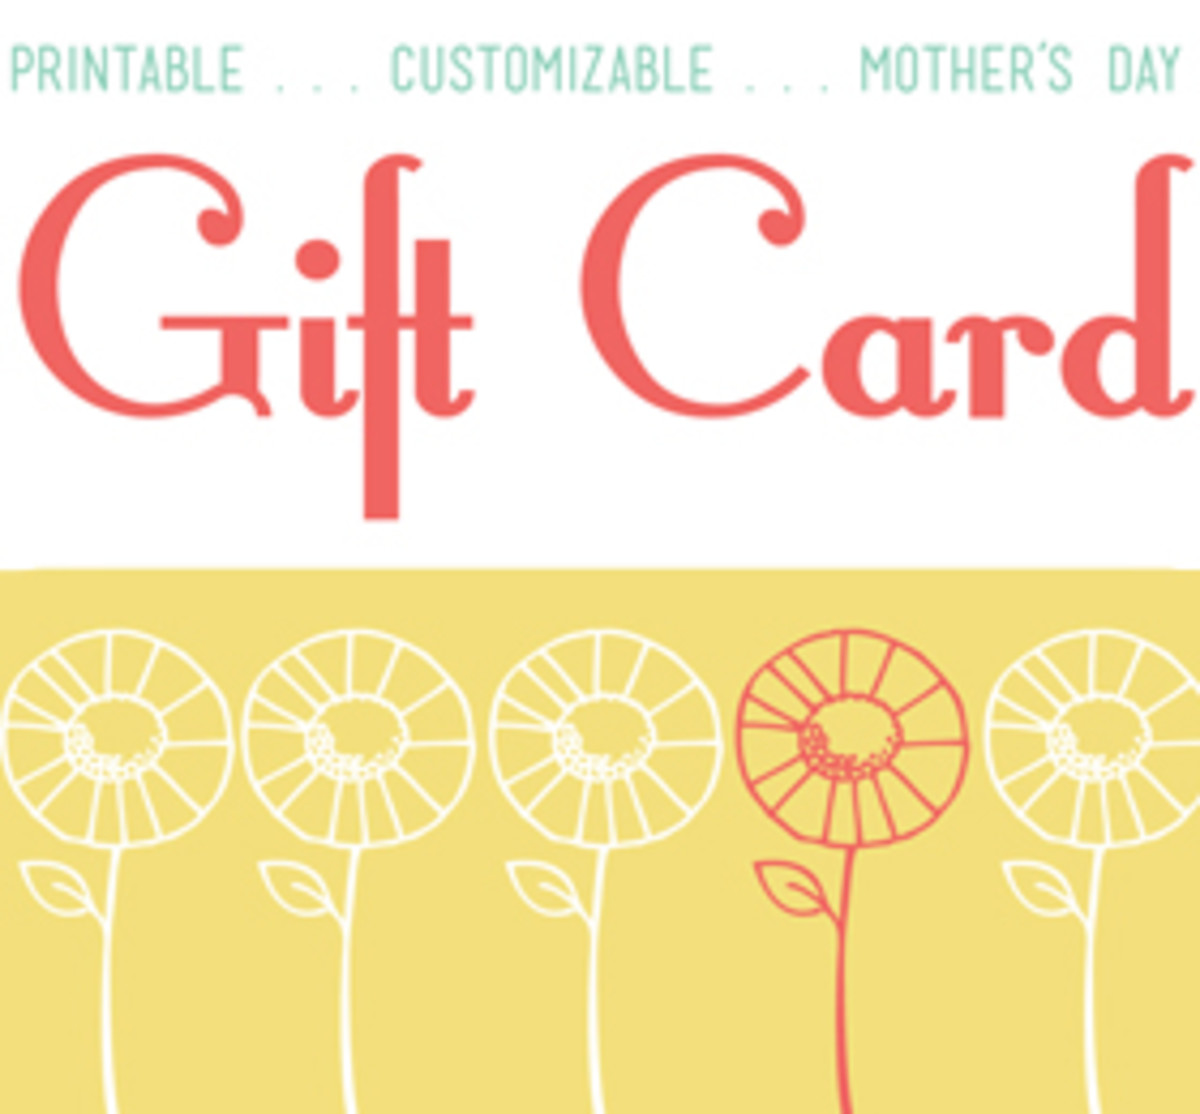 customGiftCard_mothersday_prev